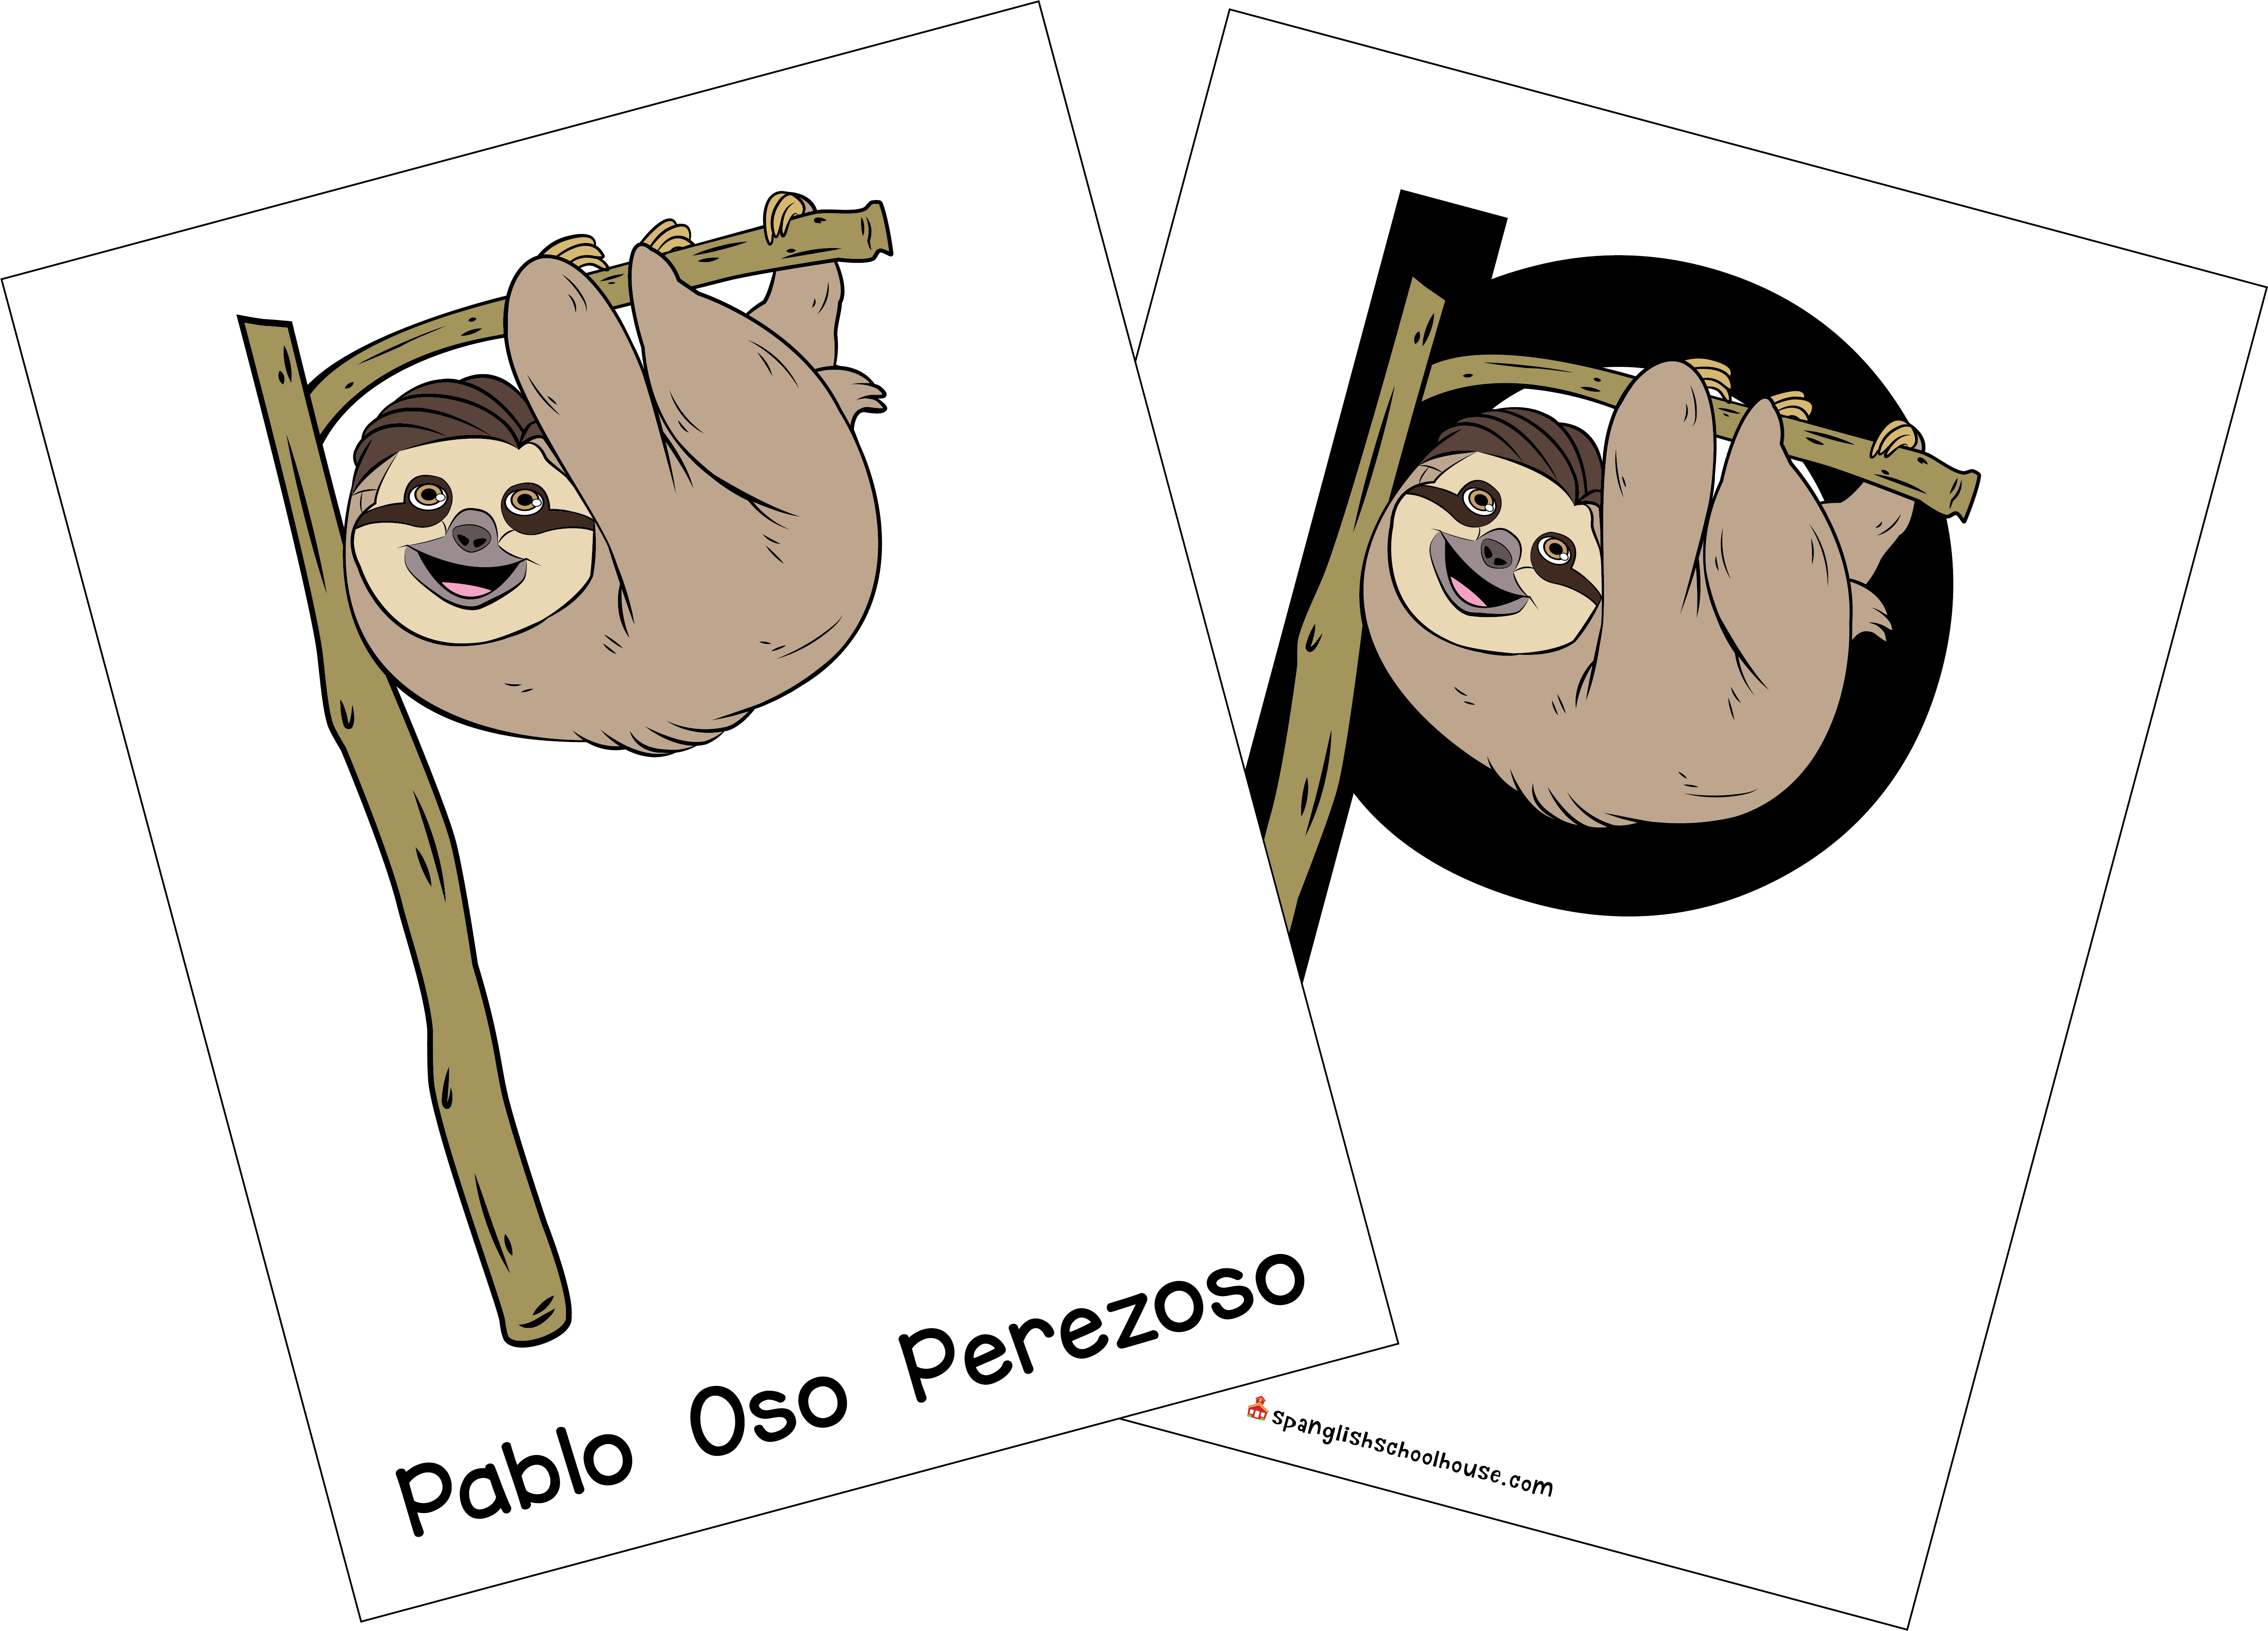 Learn the Spanish Alphabet with Pablo the Sloth